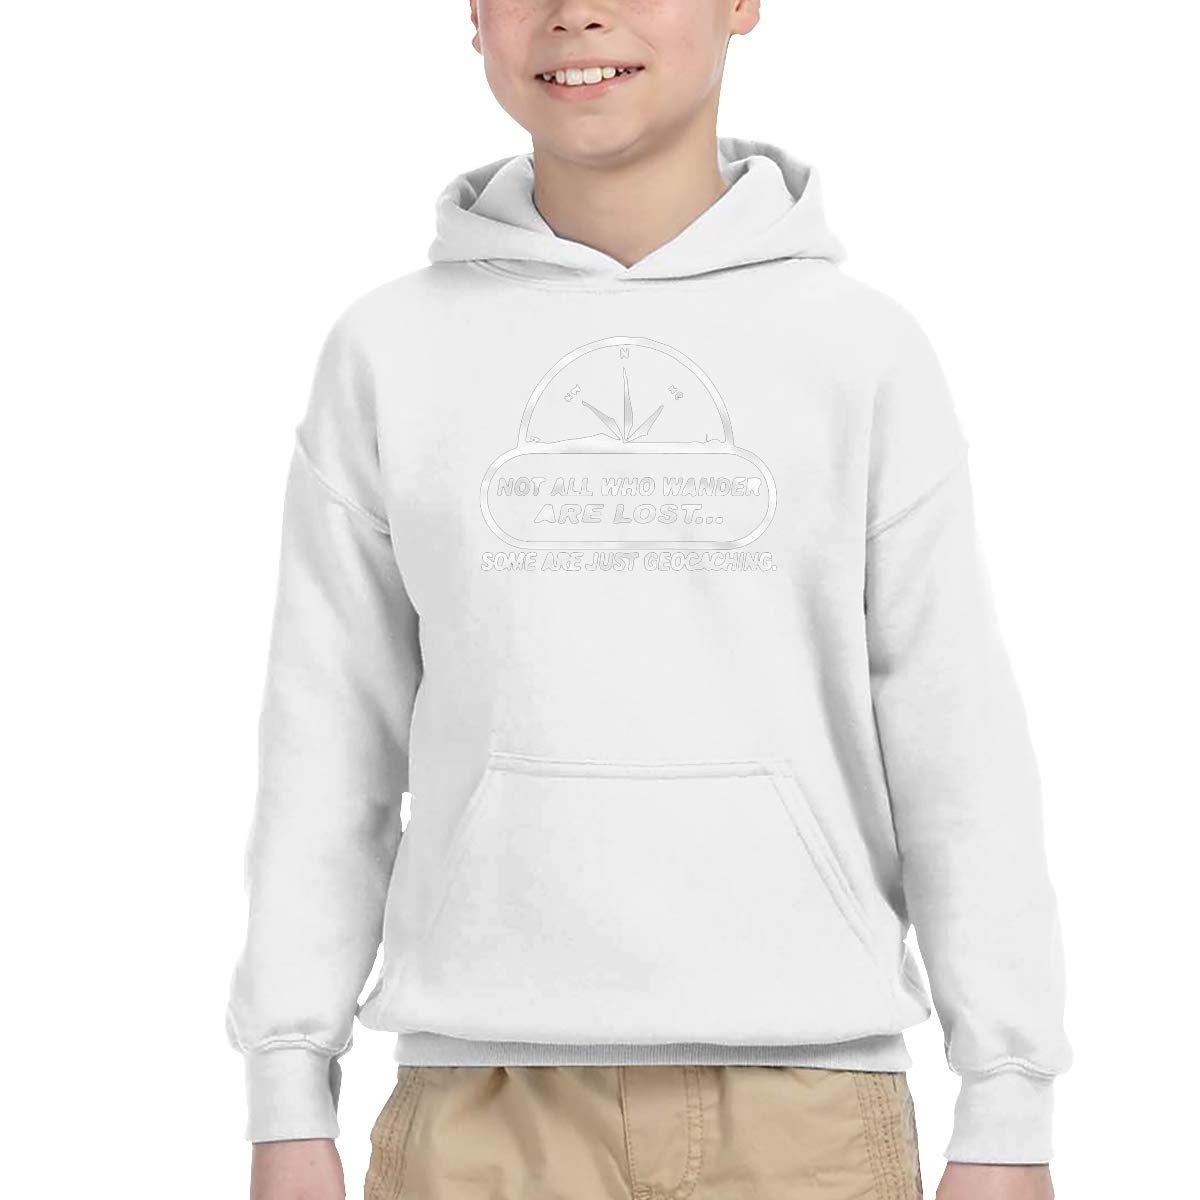 2-6 Year Old Childrens Hooded Pocket Sweater Classical Elegance and Originality Not All Wander Lost Geocaching Logo White 3T